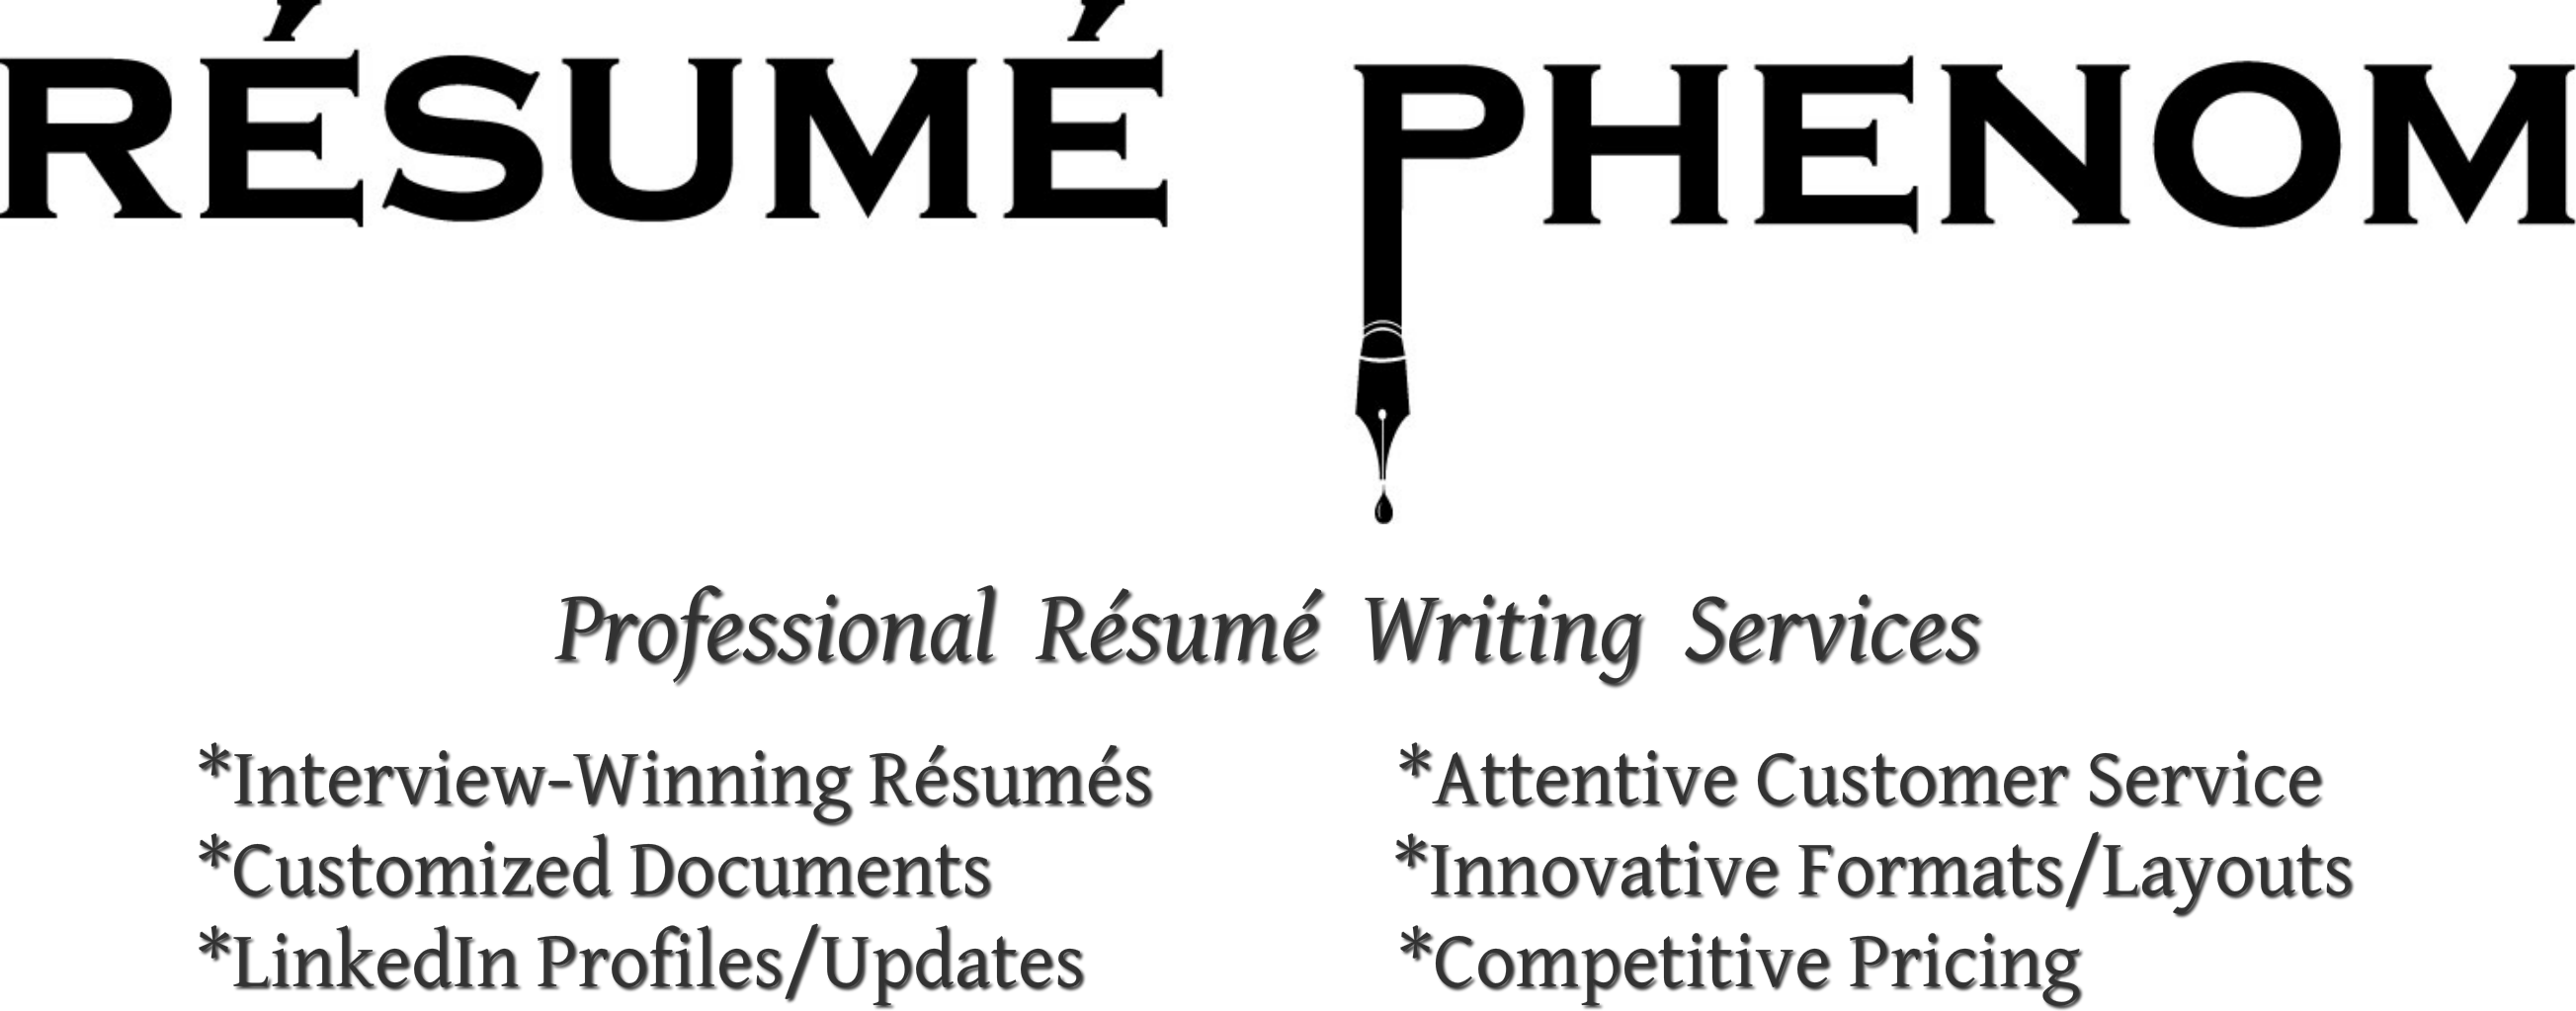 professional resume writing service halifax Resume writing service in halifax on ypcom see reviews, photos, directions, phone numbers and more for the best resume service in halifax, pa.